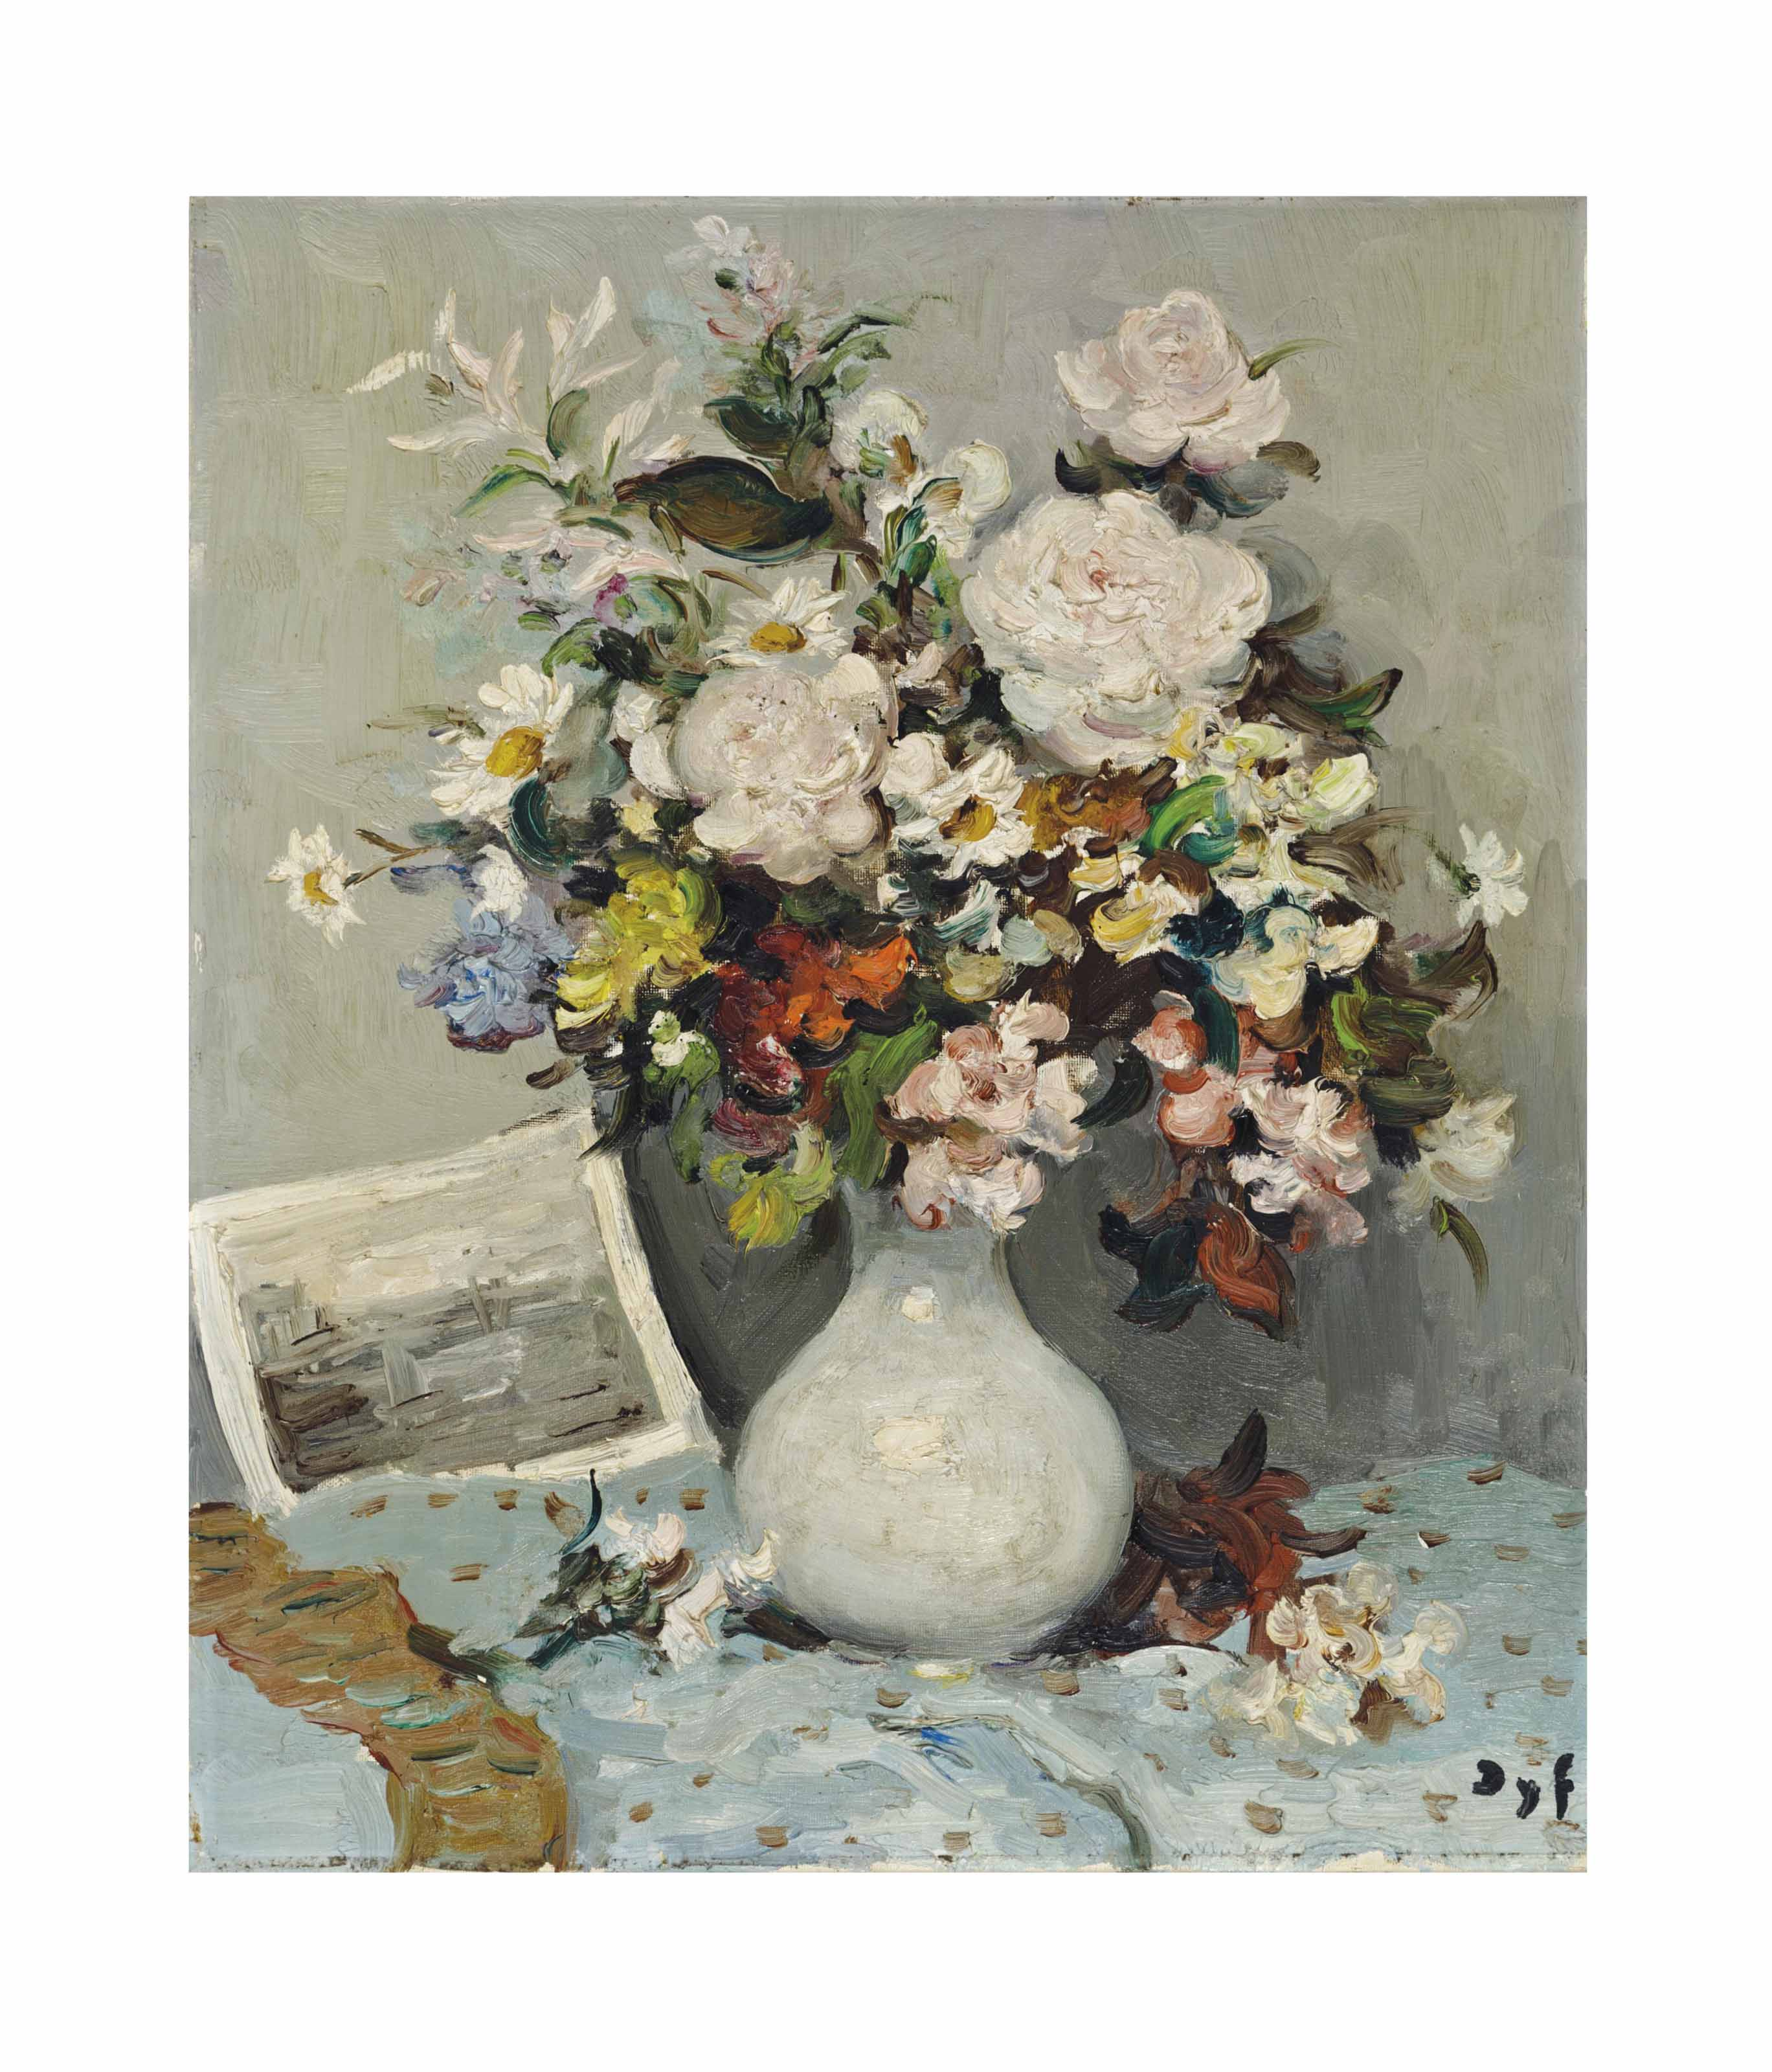 Marcel Dyf (French, 1899-1985)